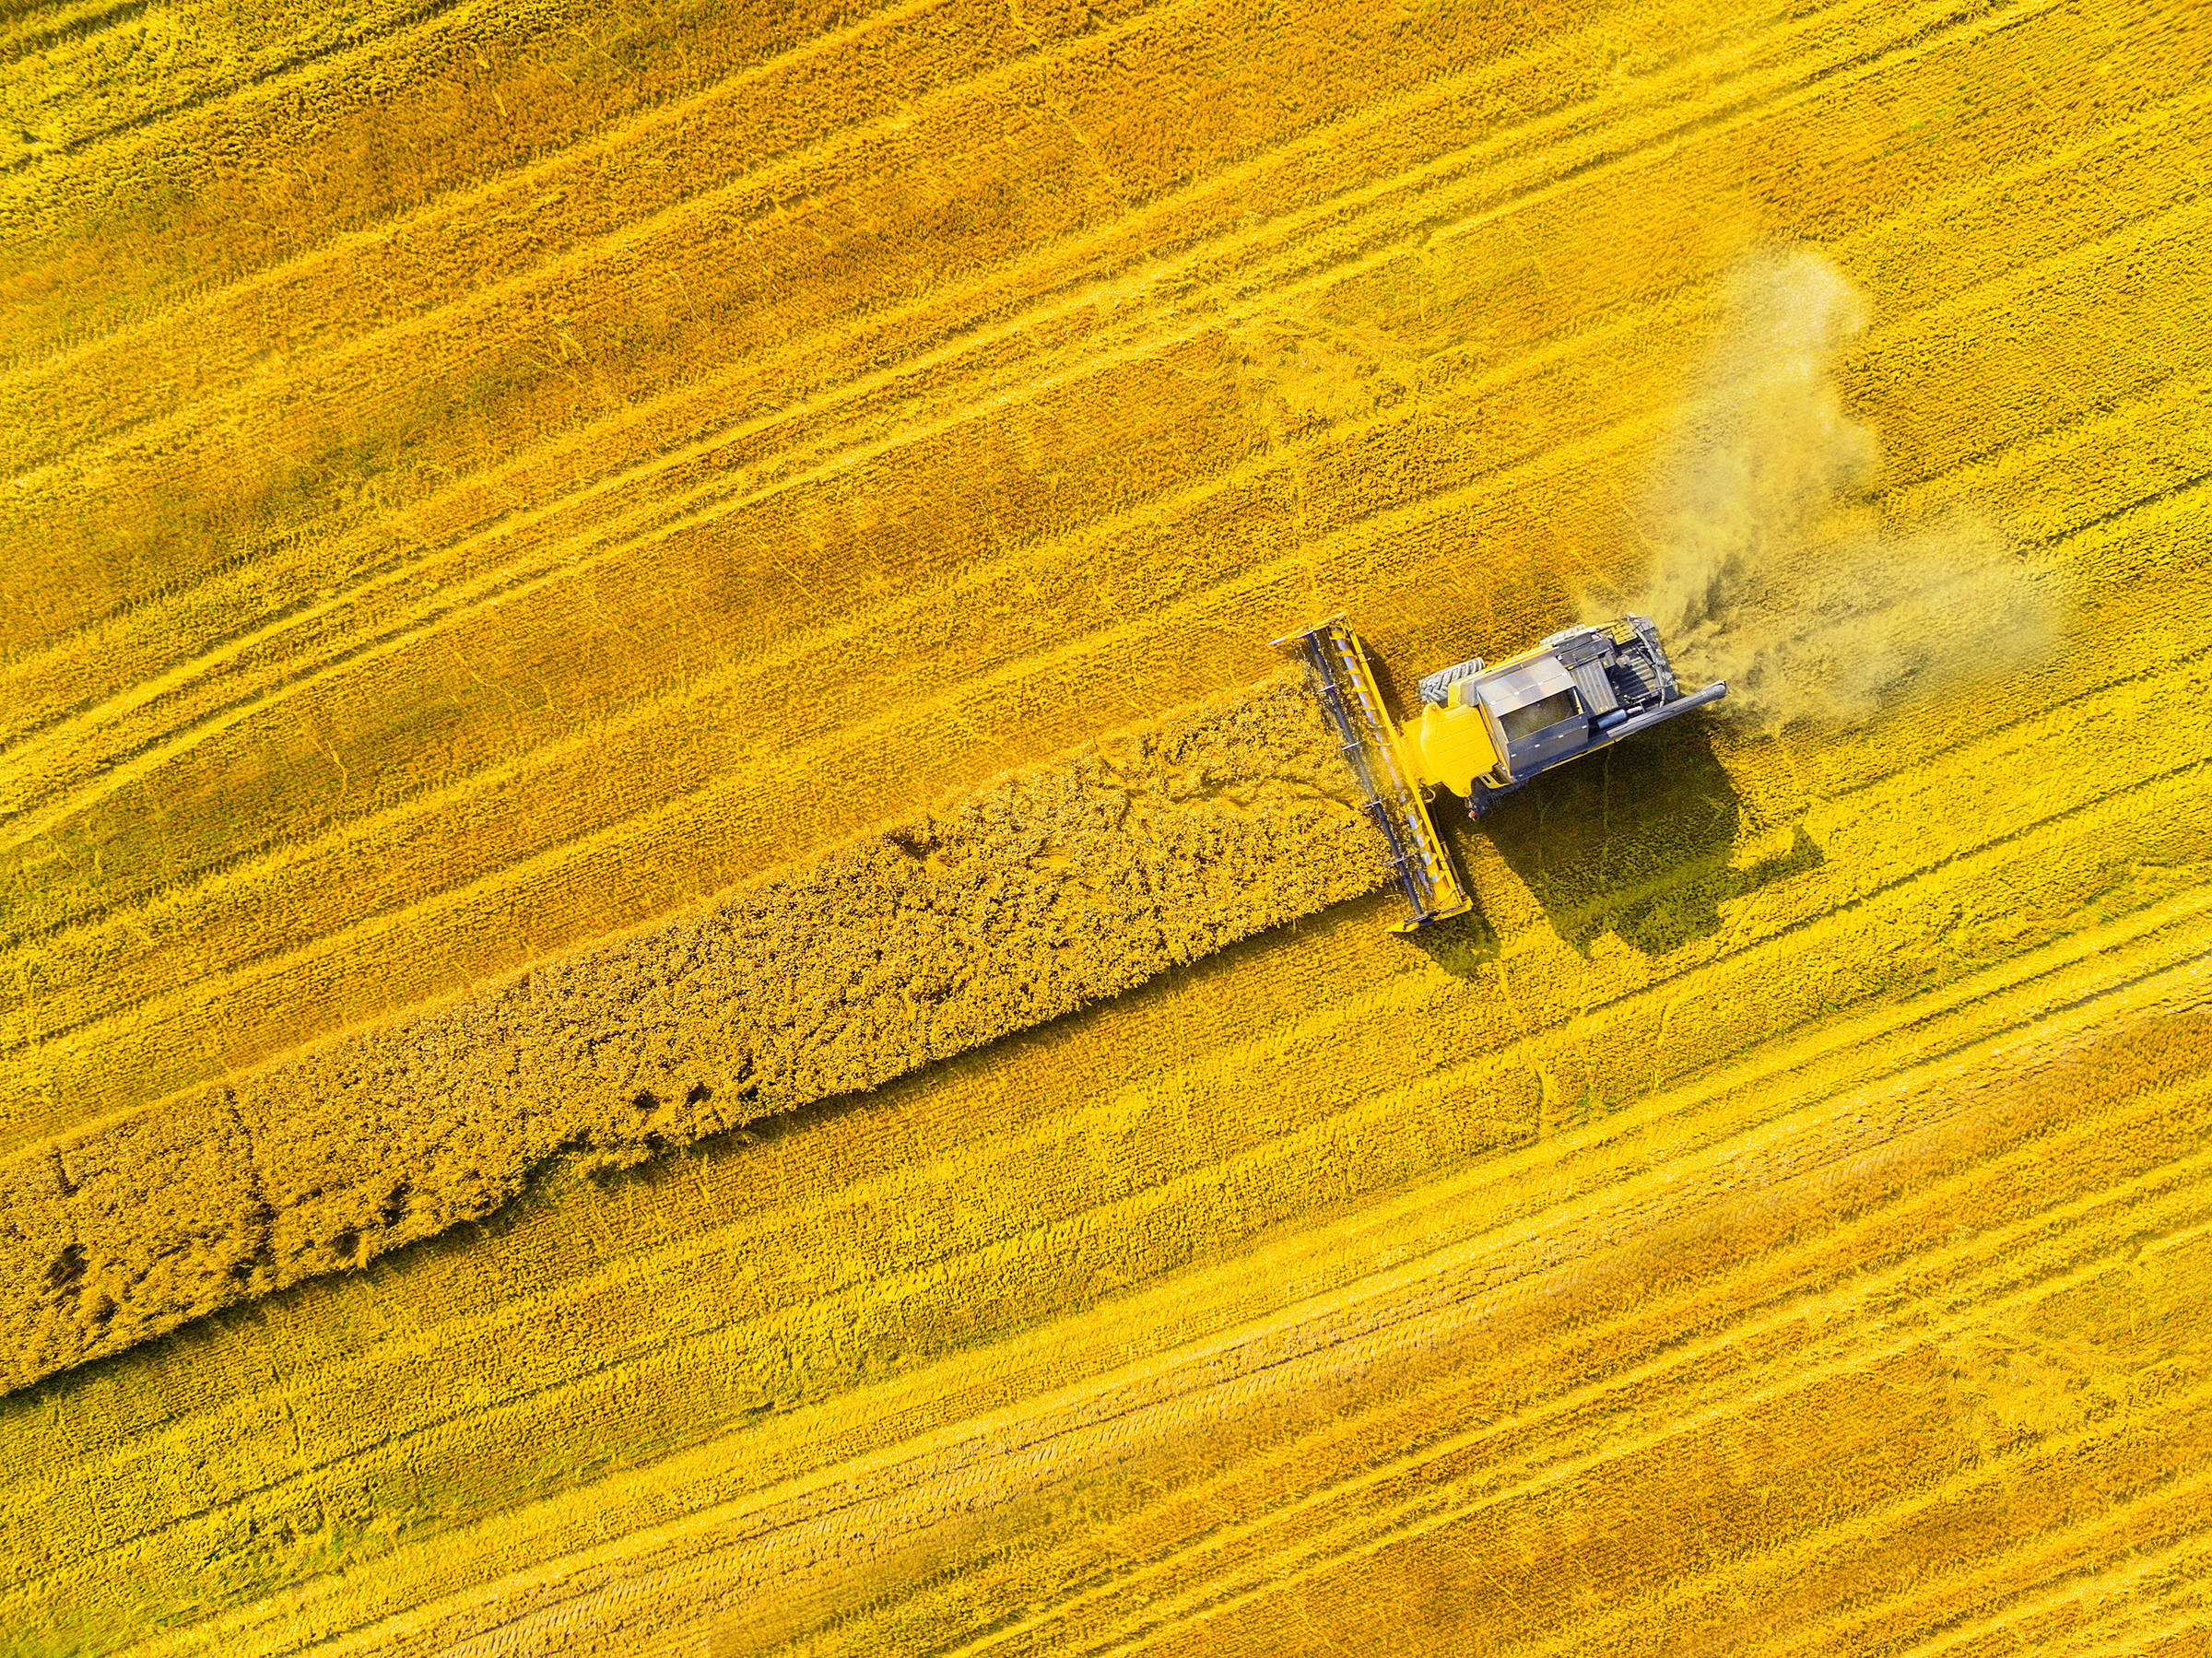 Arable farmers need help to become resilient to volatility following harvest